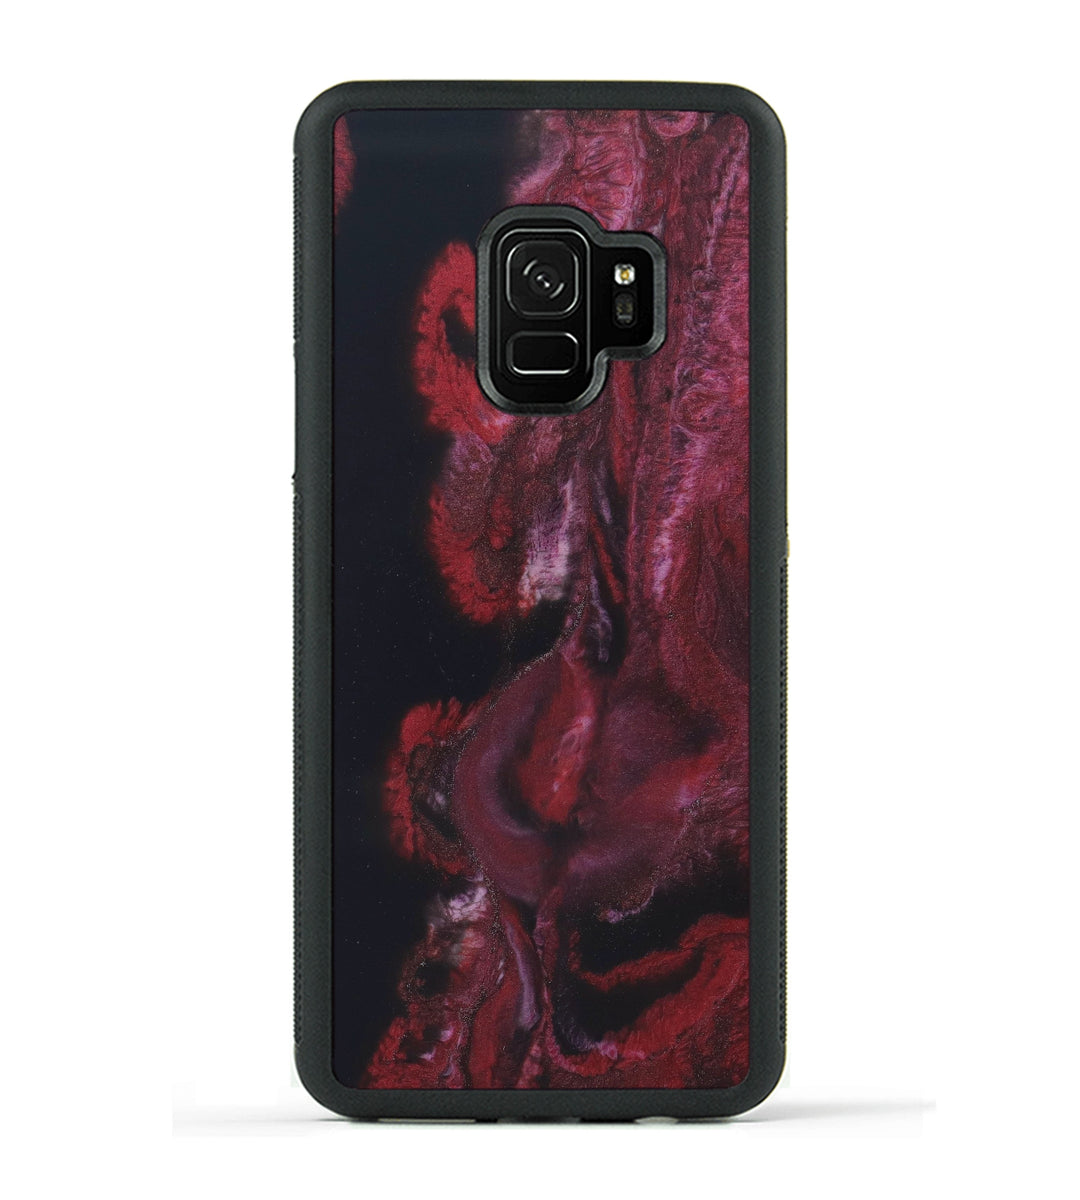 Galaxy S9 ResinArt Phone Case - Wladyslaw (Dark Red, 347669)